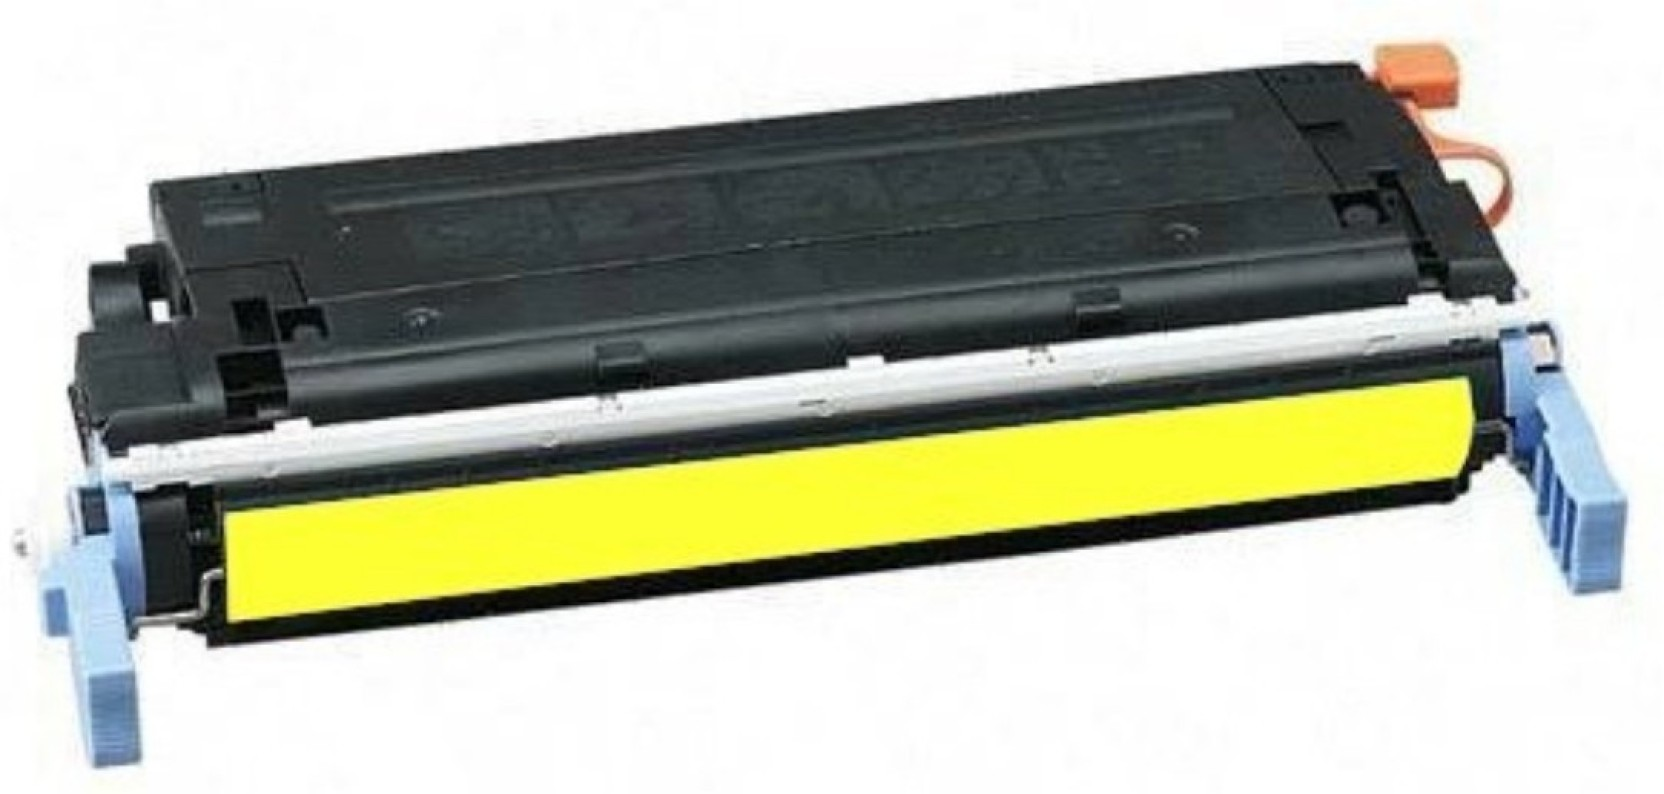 Pps C9722a Toner Cartridge Compatible For Hp Yellow Clj 4600 4650 Print Use In Laserjet On Offer